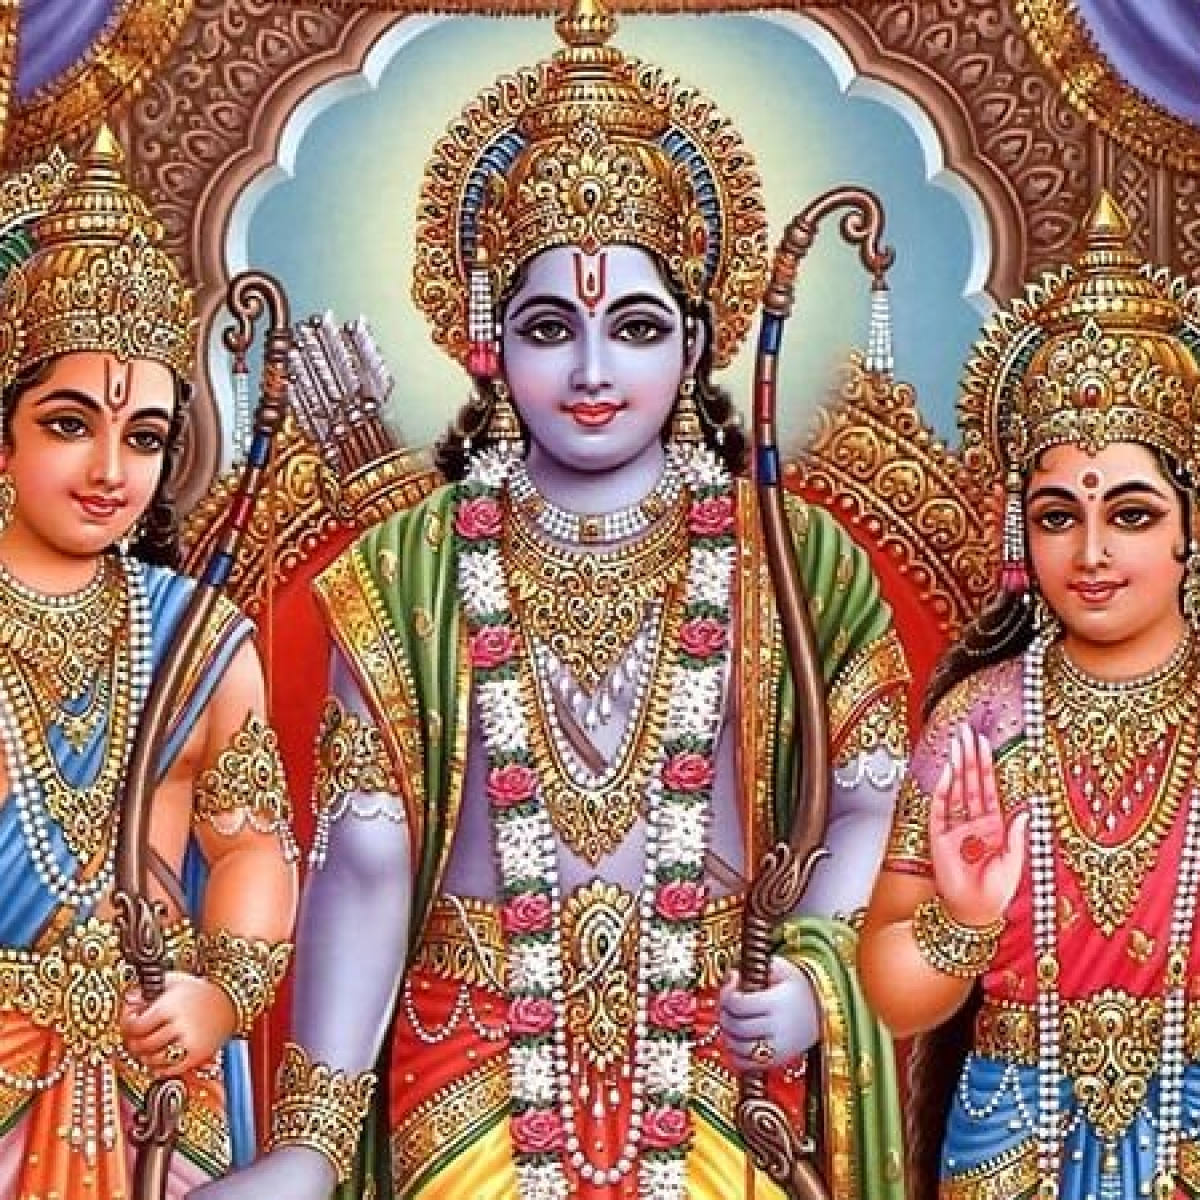 Ram Navami 2021: Significance, tithi, legend - all you need to know